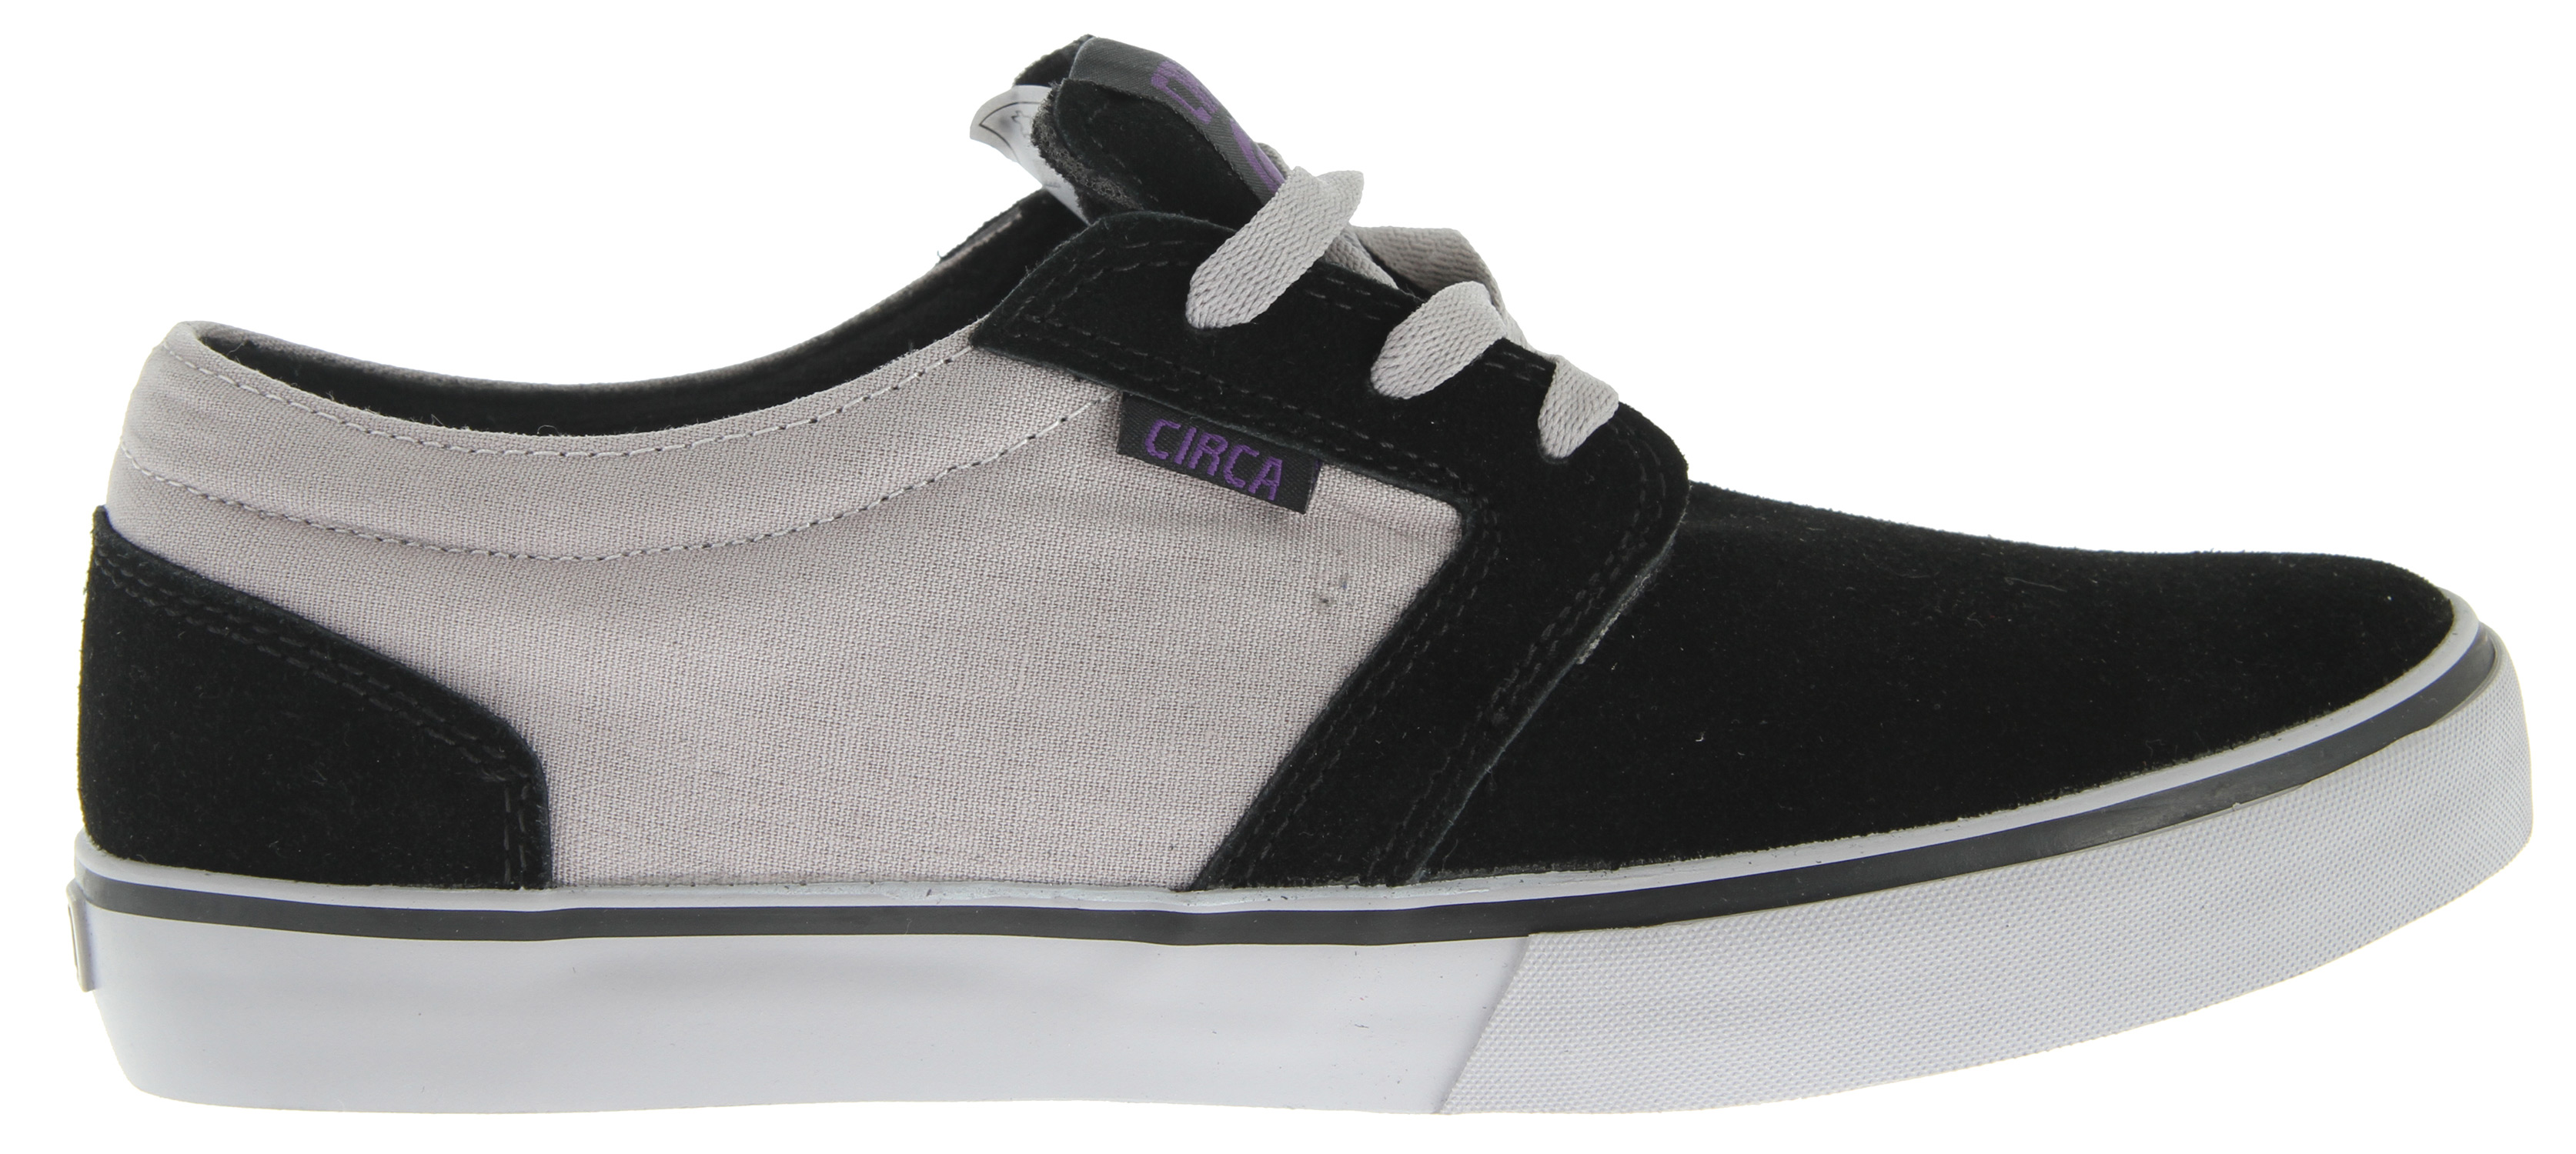 Skateboard The new Circa Hesh skate shoe, a joint venture from Circa and legendary skateboard brand GS. Constructed with a reinforced canvas upper and wide lacing to ensure that perfect fit and extended durability. Now featuring FusionGrip, a super soft and sticky rubber, to give you that flexible great board feeling that every rider wants. Also, thanks to the insole and thick padding spread throughout the shoe, you get even more added support and shock absorbency.Key Features of the Circa Hesh Skate Shoes: Low Profile Fit And Look Genuine Vulcanized Construction Fusiongrip Outsole Rubber For Ultimate Grip C1Rca Herringbone Outsole Provides Improved Board Control - $42.95